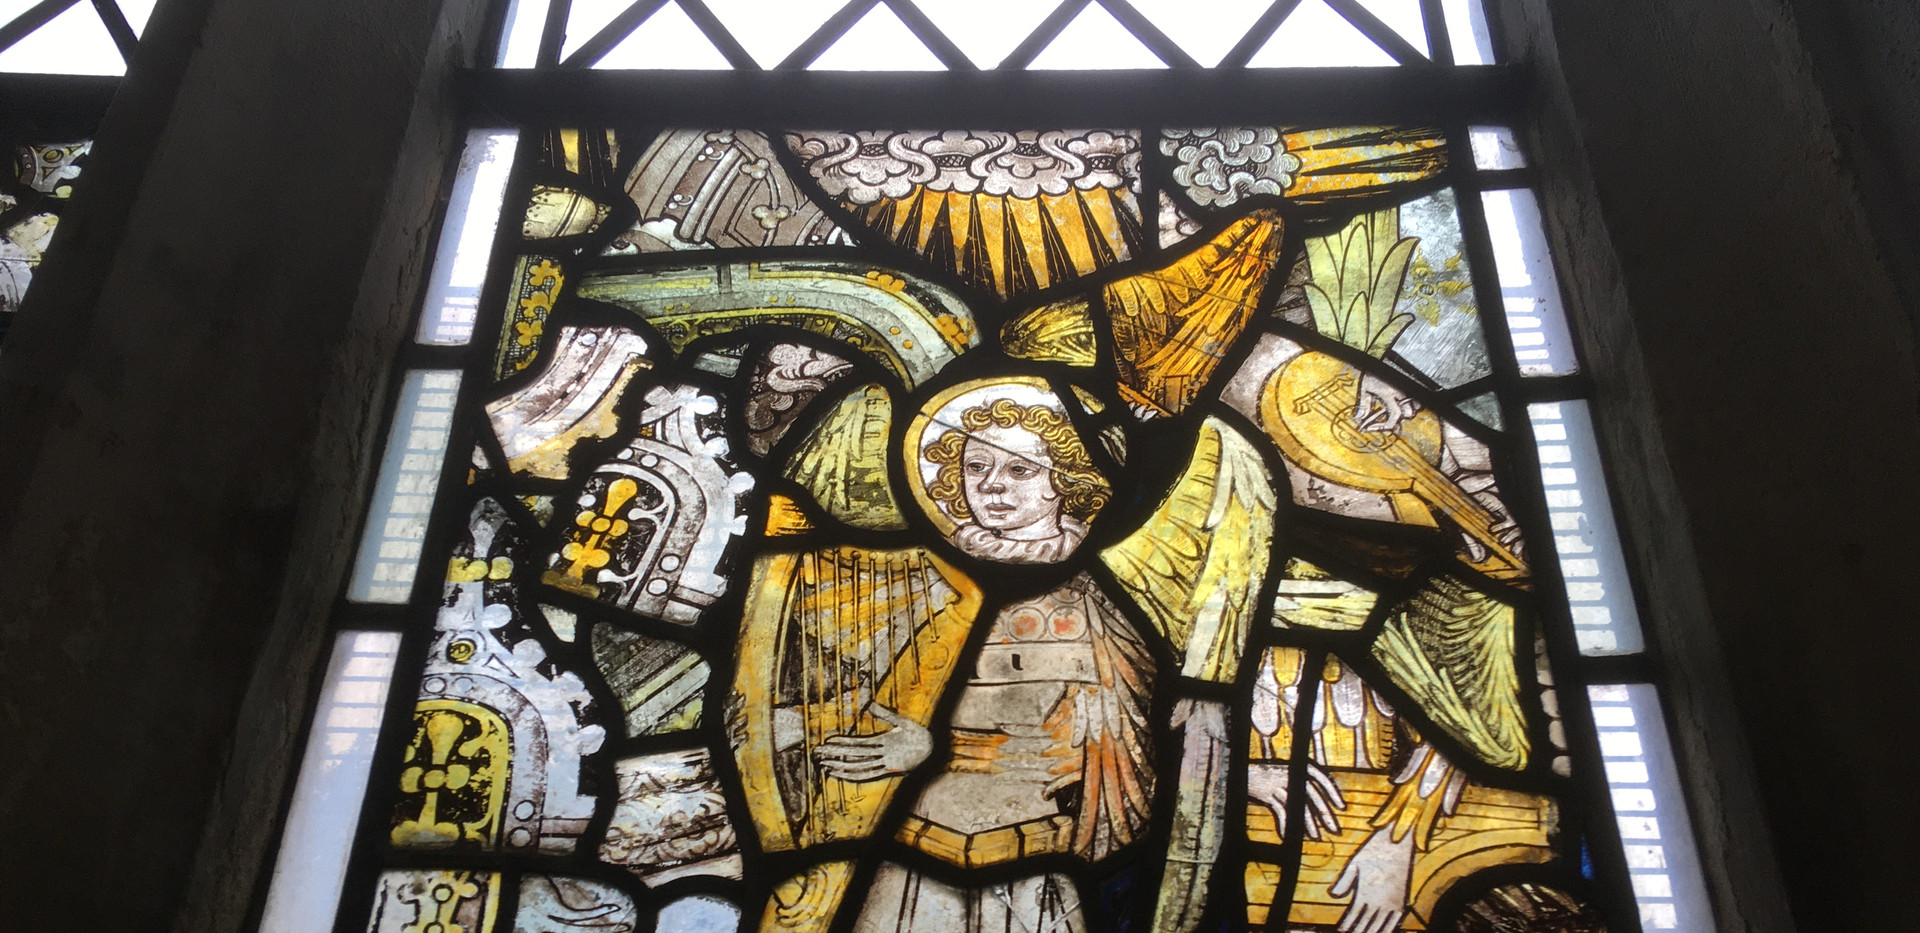 A harp player from the Cawston window, with random bits of lute player and psaltery player too. The chunky bits on the soundbox of the harp are suggestive of brays, which would fit the fifteenth-century date.